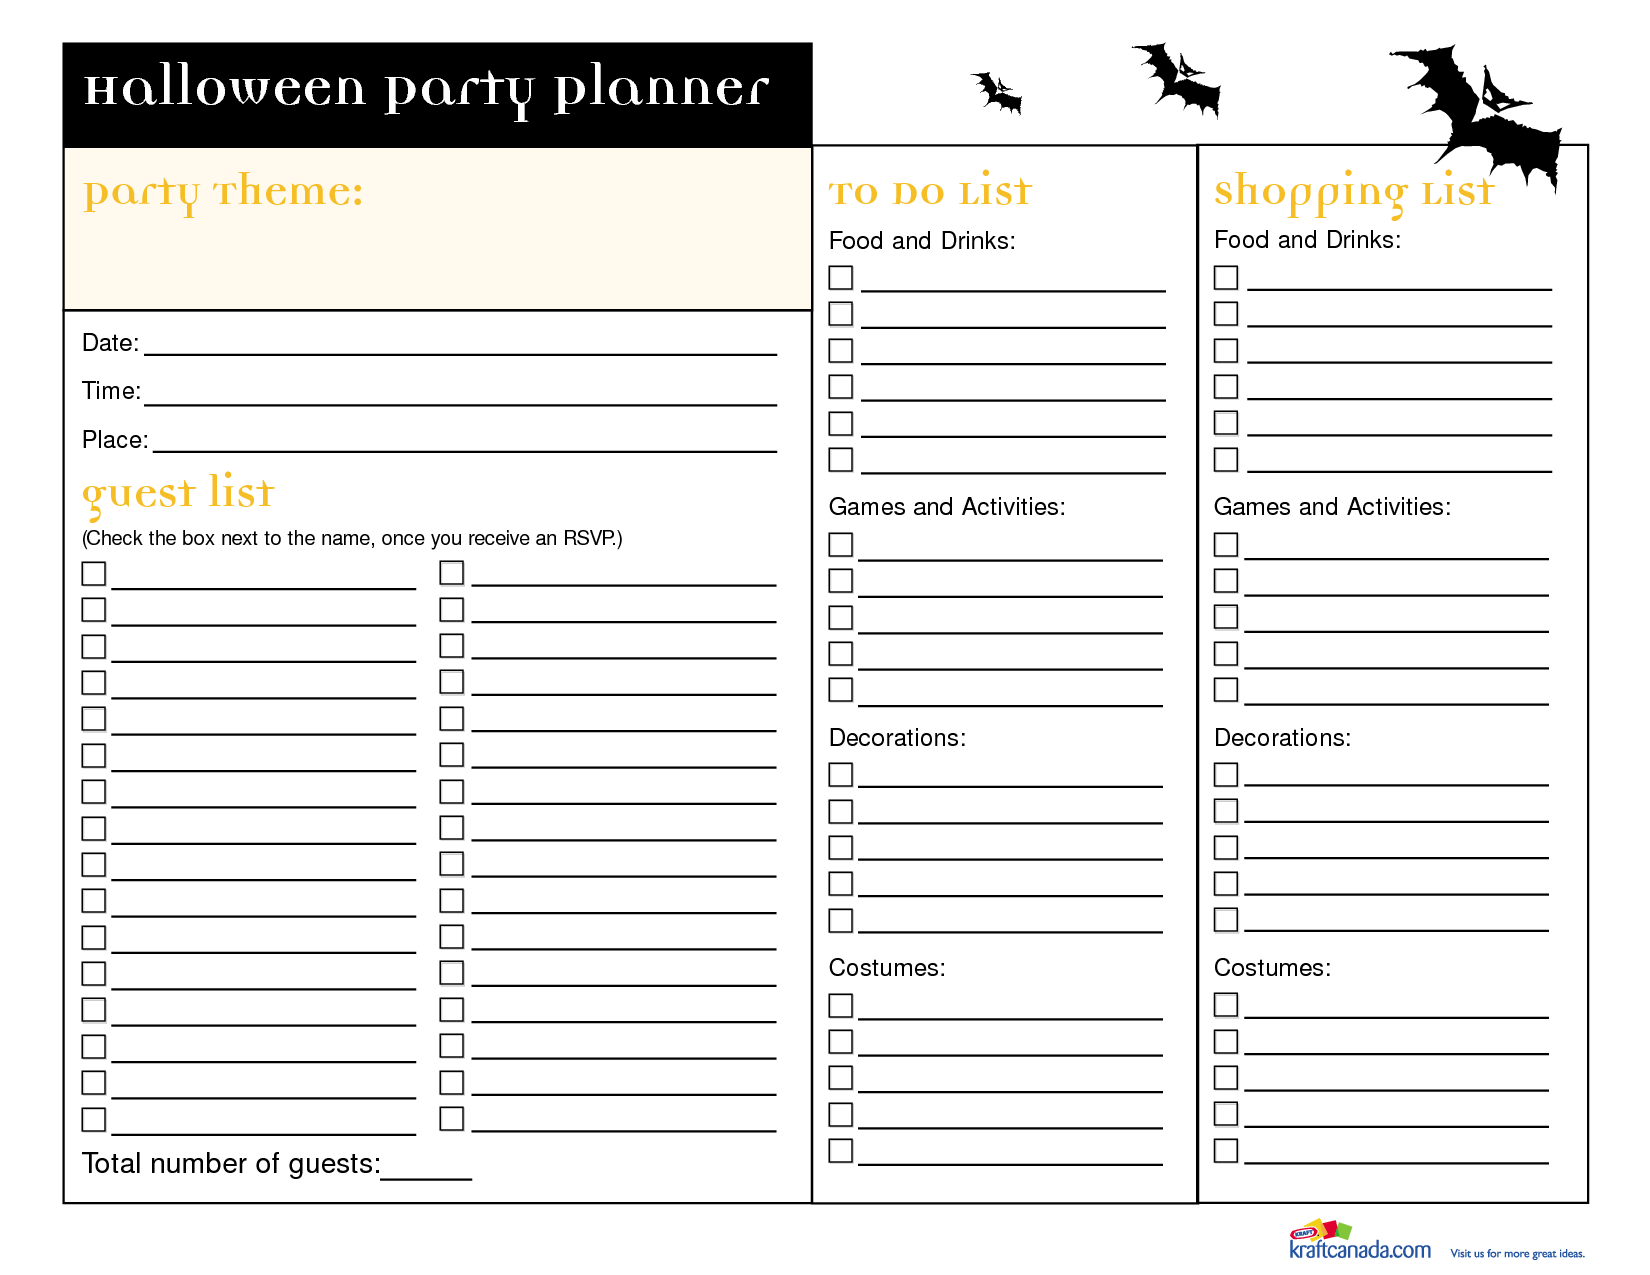 party planner template | Halloween Party Planner Party Theme | The ...